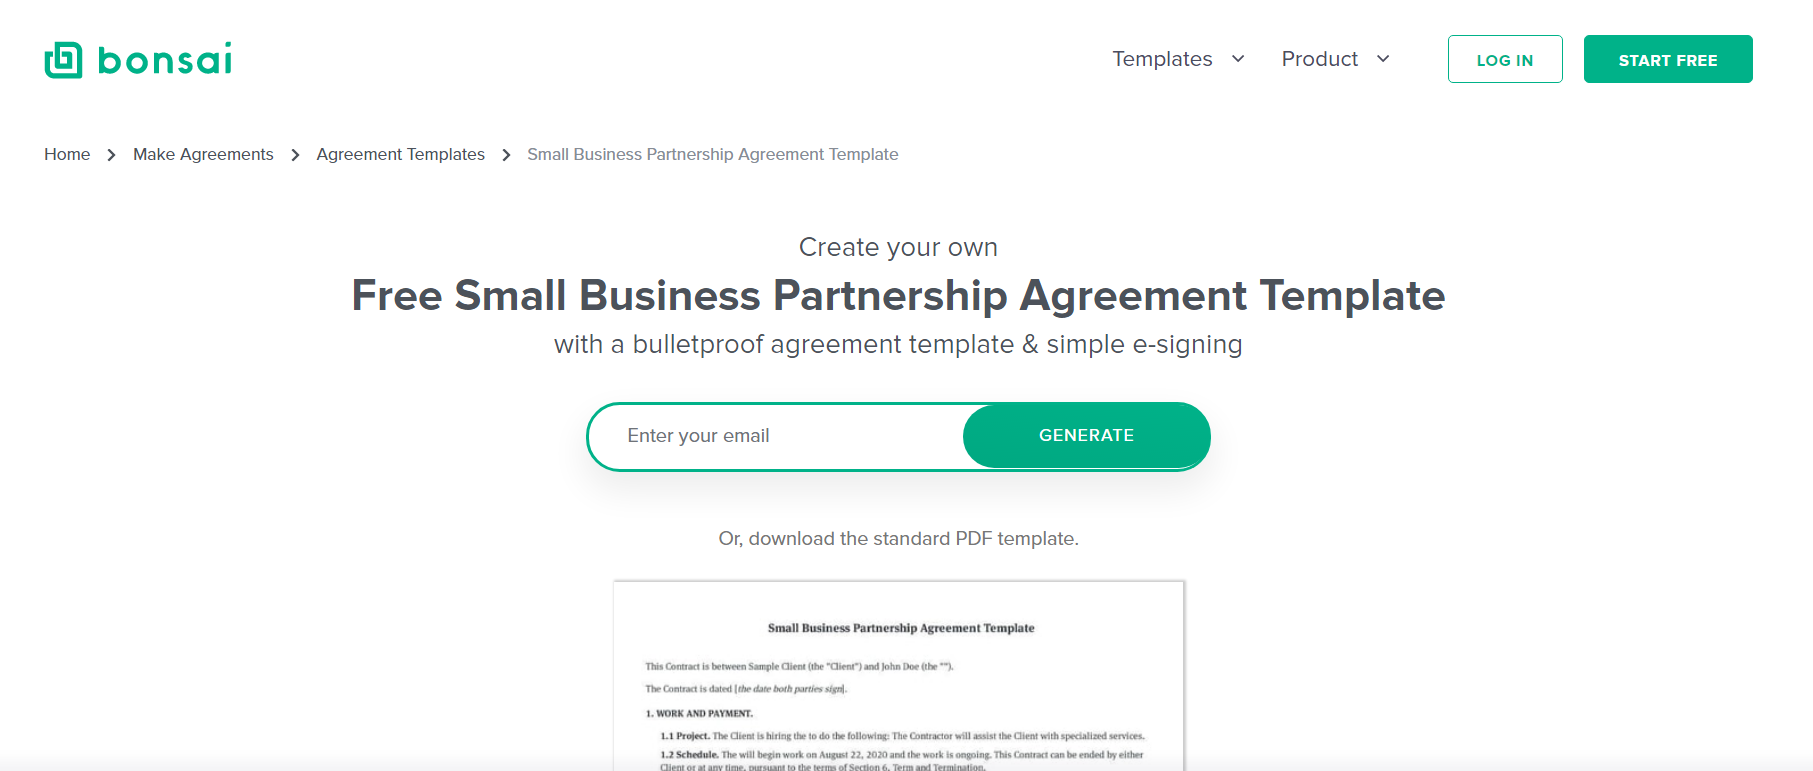 The Complete Guide to Business Partnership Agreements